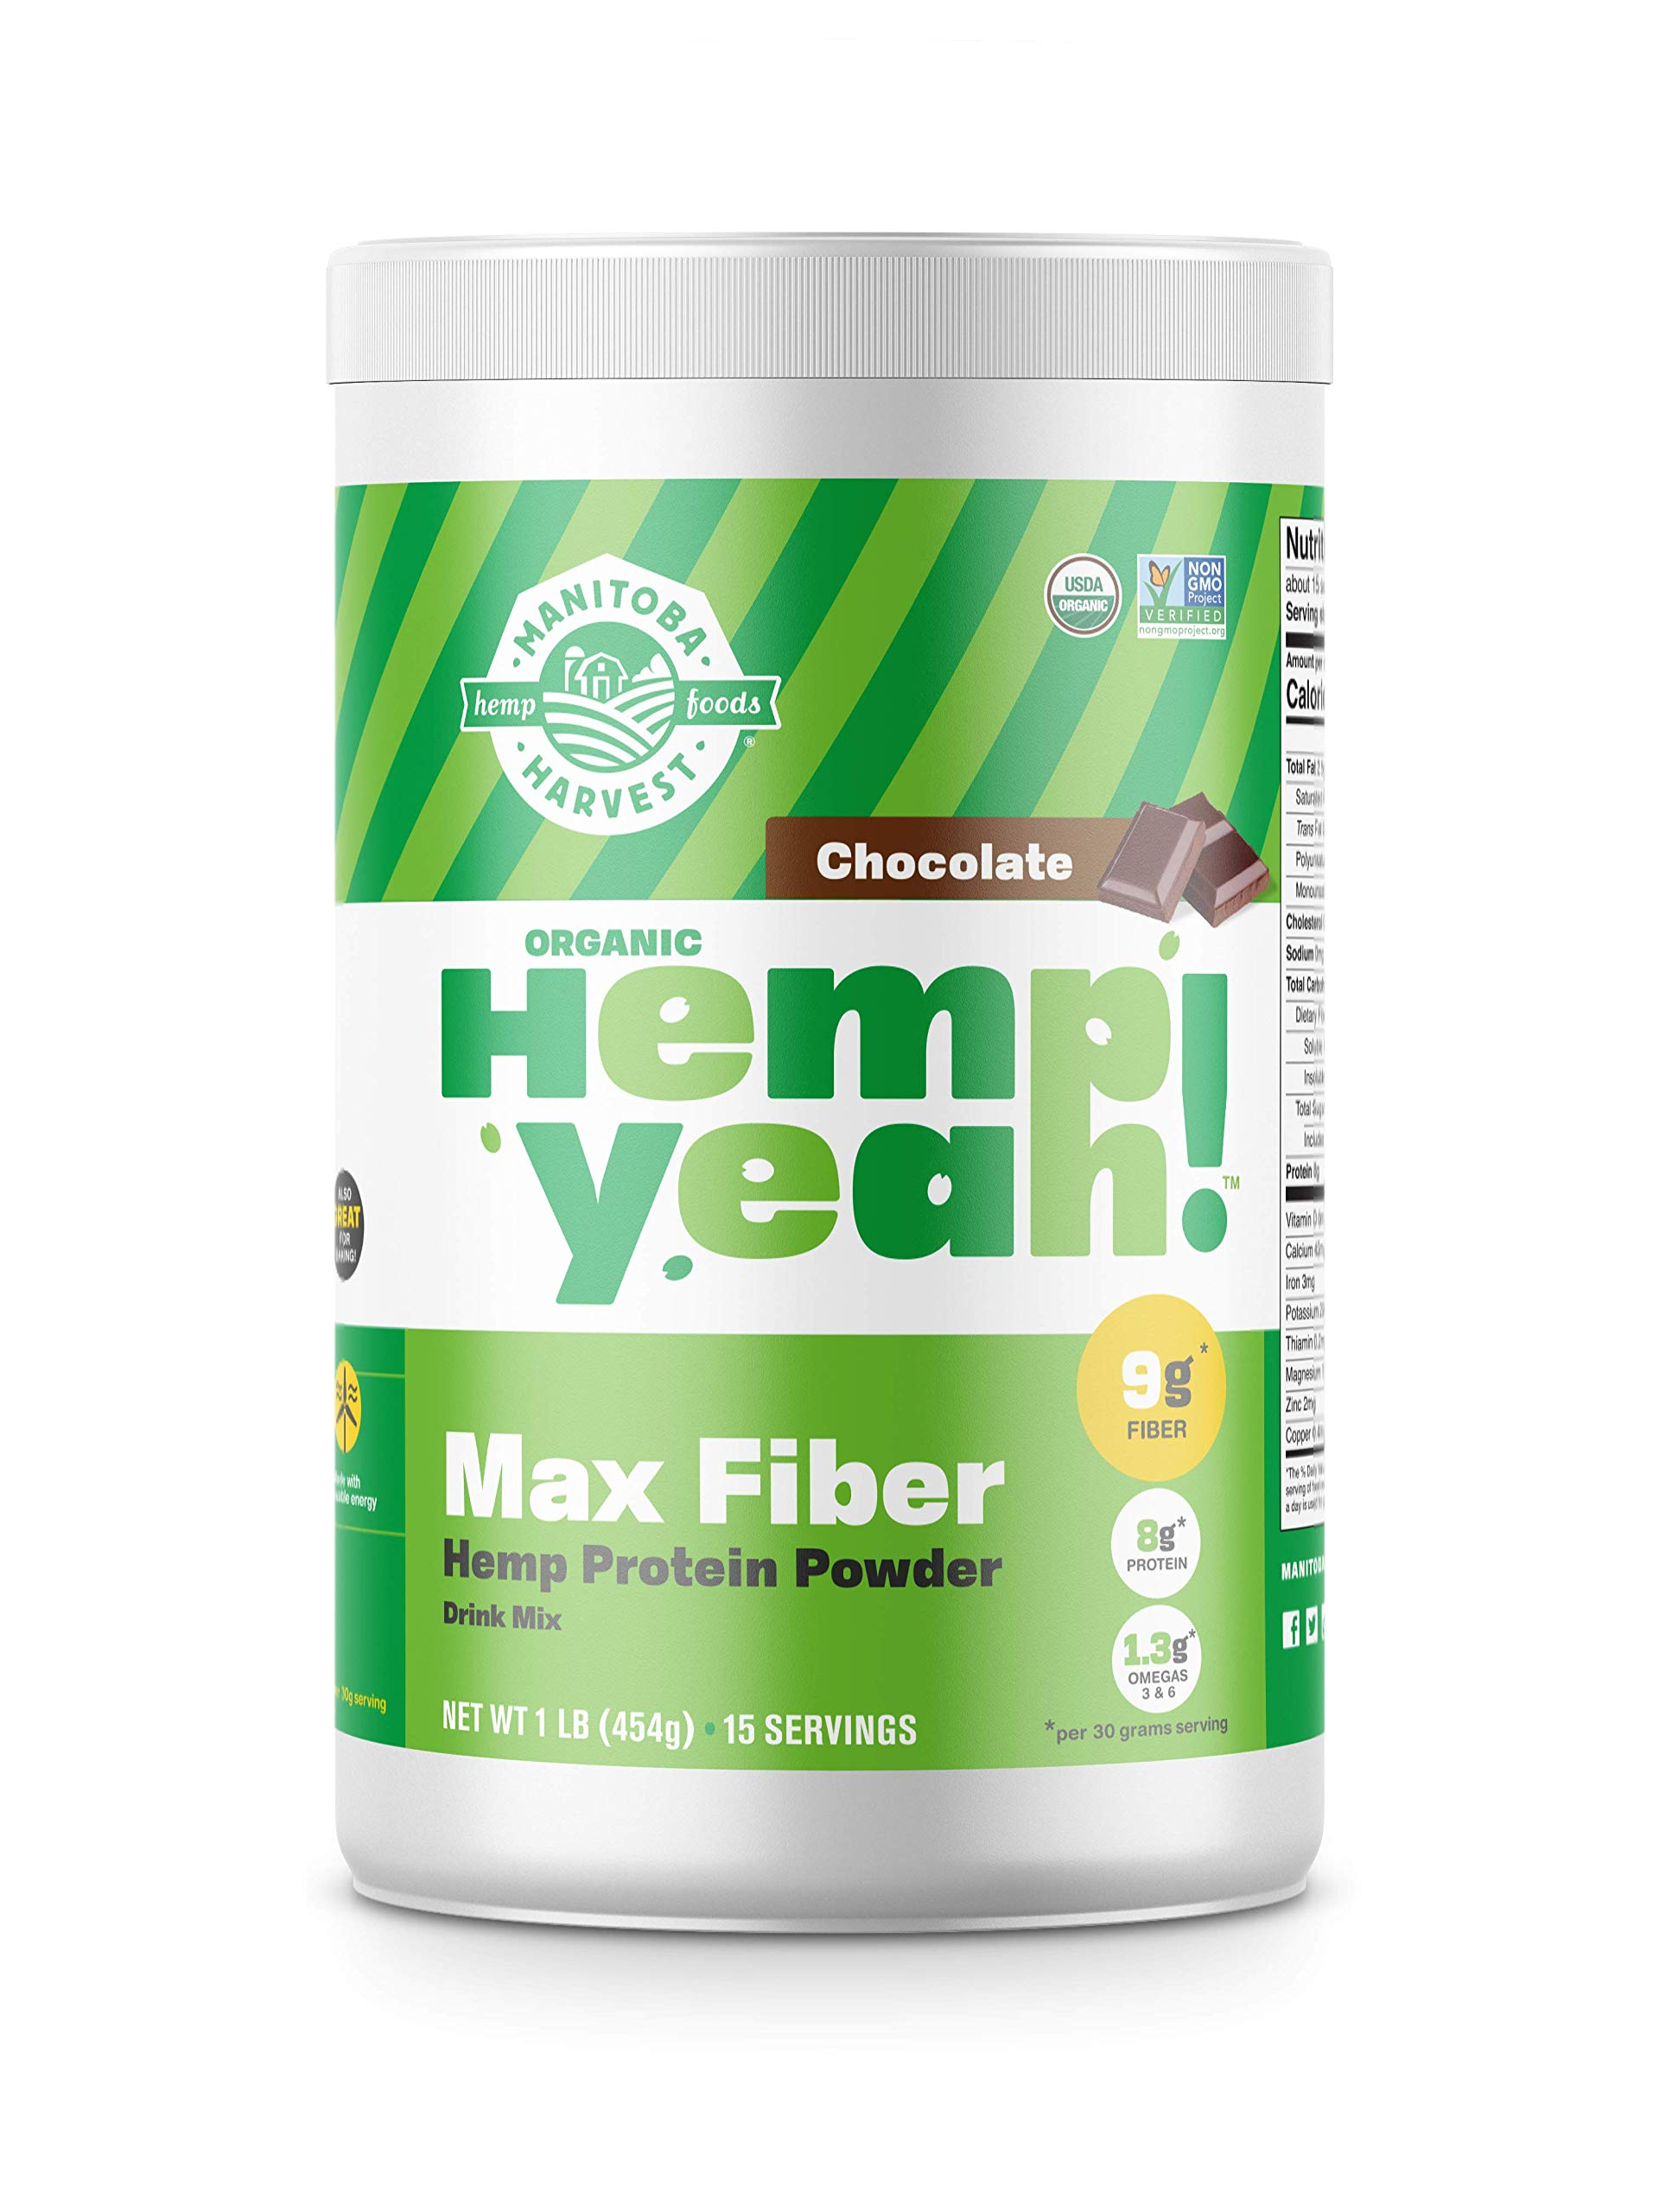 Manitoba Harvest Hemp Yeah! Organic Max Fiber Protein Powder, Chocolate, 16oz; with 9g of Fiber, 8g Protein and 1.3g Omegas 3&6 per Serving, Preservative Free, Non-GMO by Manitoba Harvest